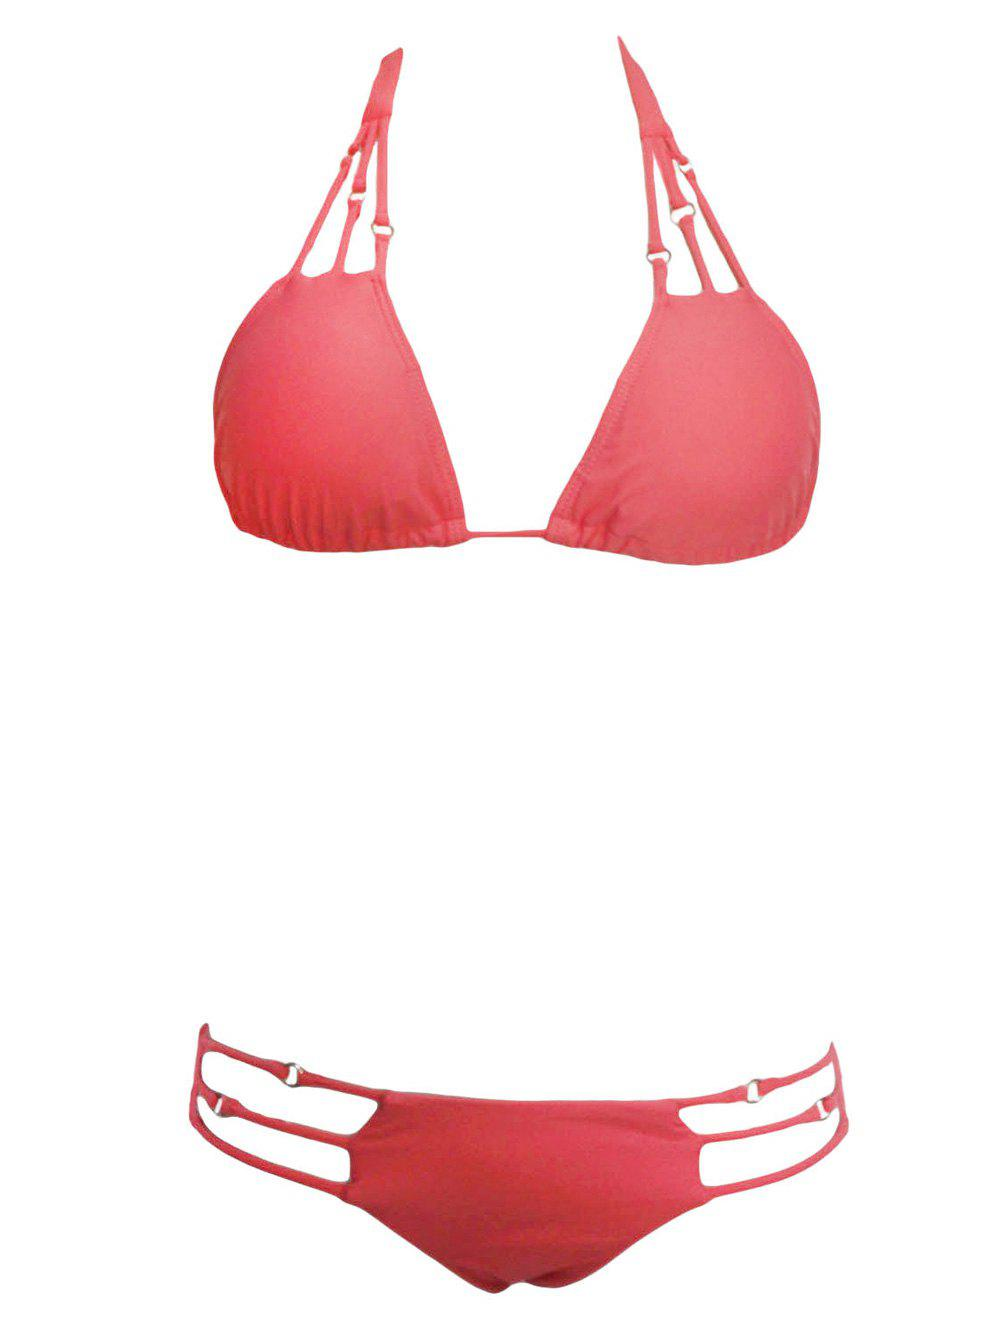 Alluring Women's Spaghetti Straps Hollow Out Bikini Set - WATERMELON RED M